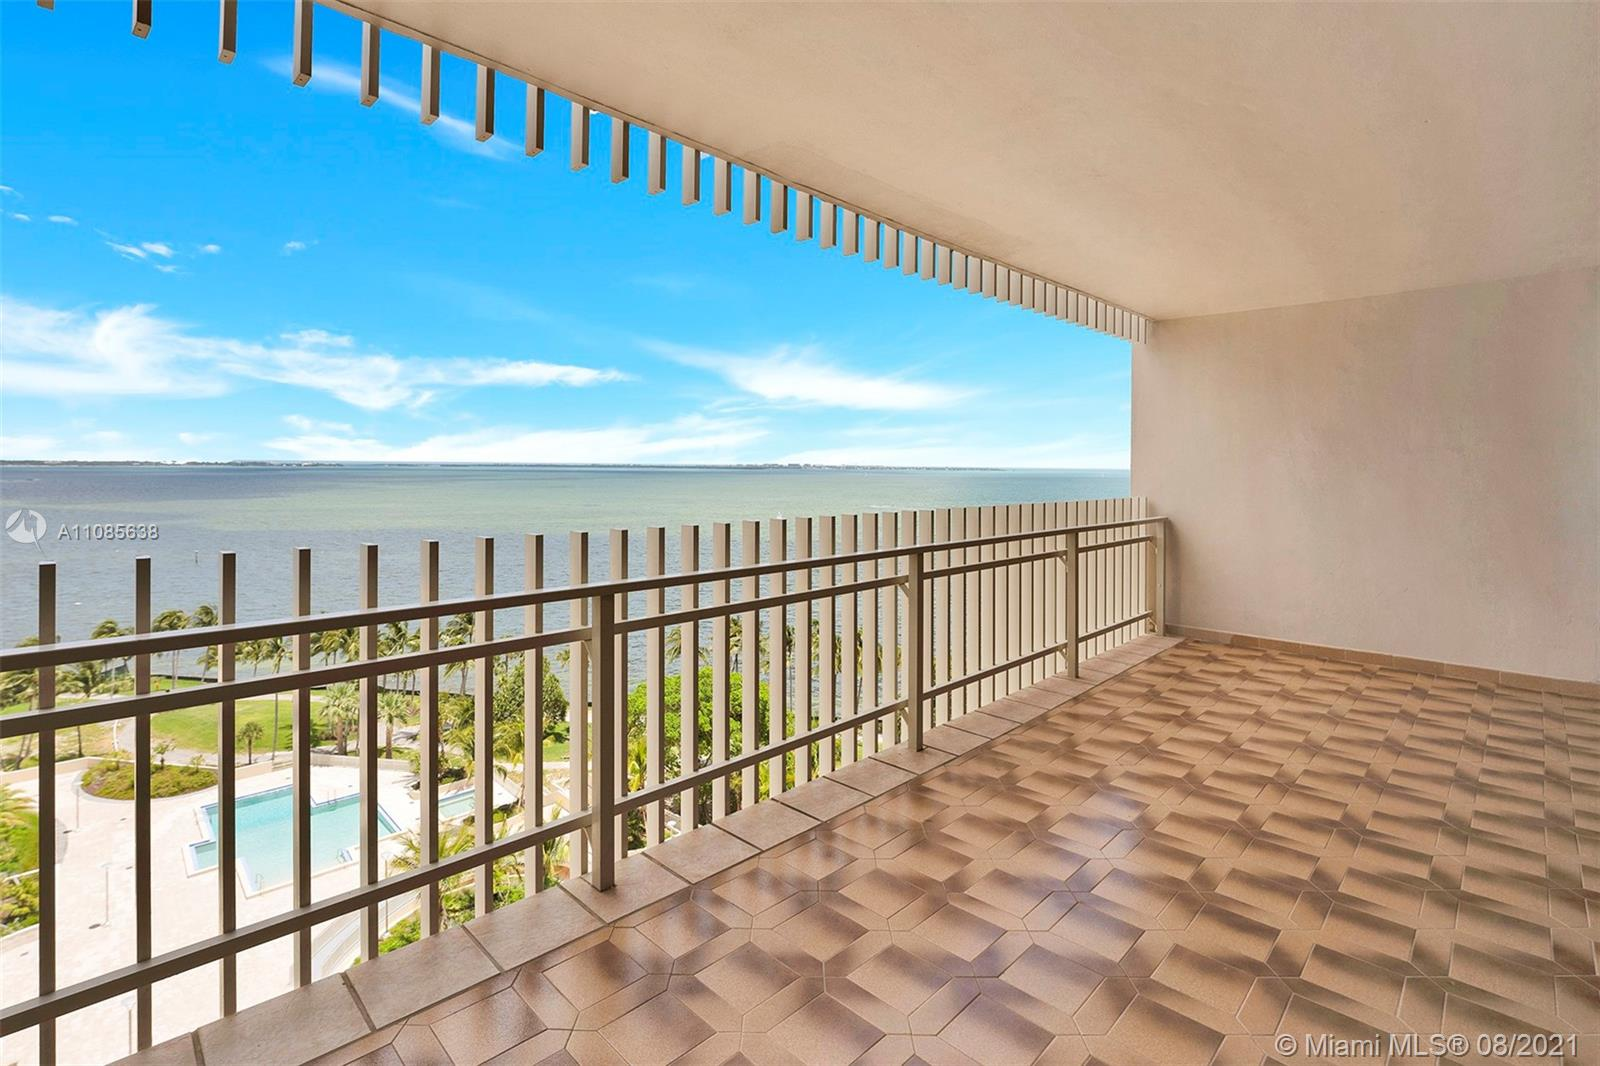 Remarkable views from this 2 bed/ 2 bath condo in the exclusive island at Grove Isle.  Rented as-is with valet parking, one assigned parking.  Currently only amenity available is gym, pool soon to come.  All other amenities under renovations.  Please allow 24 hours for showing.